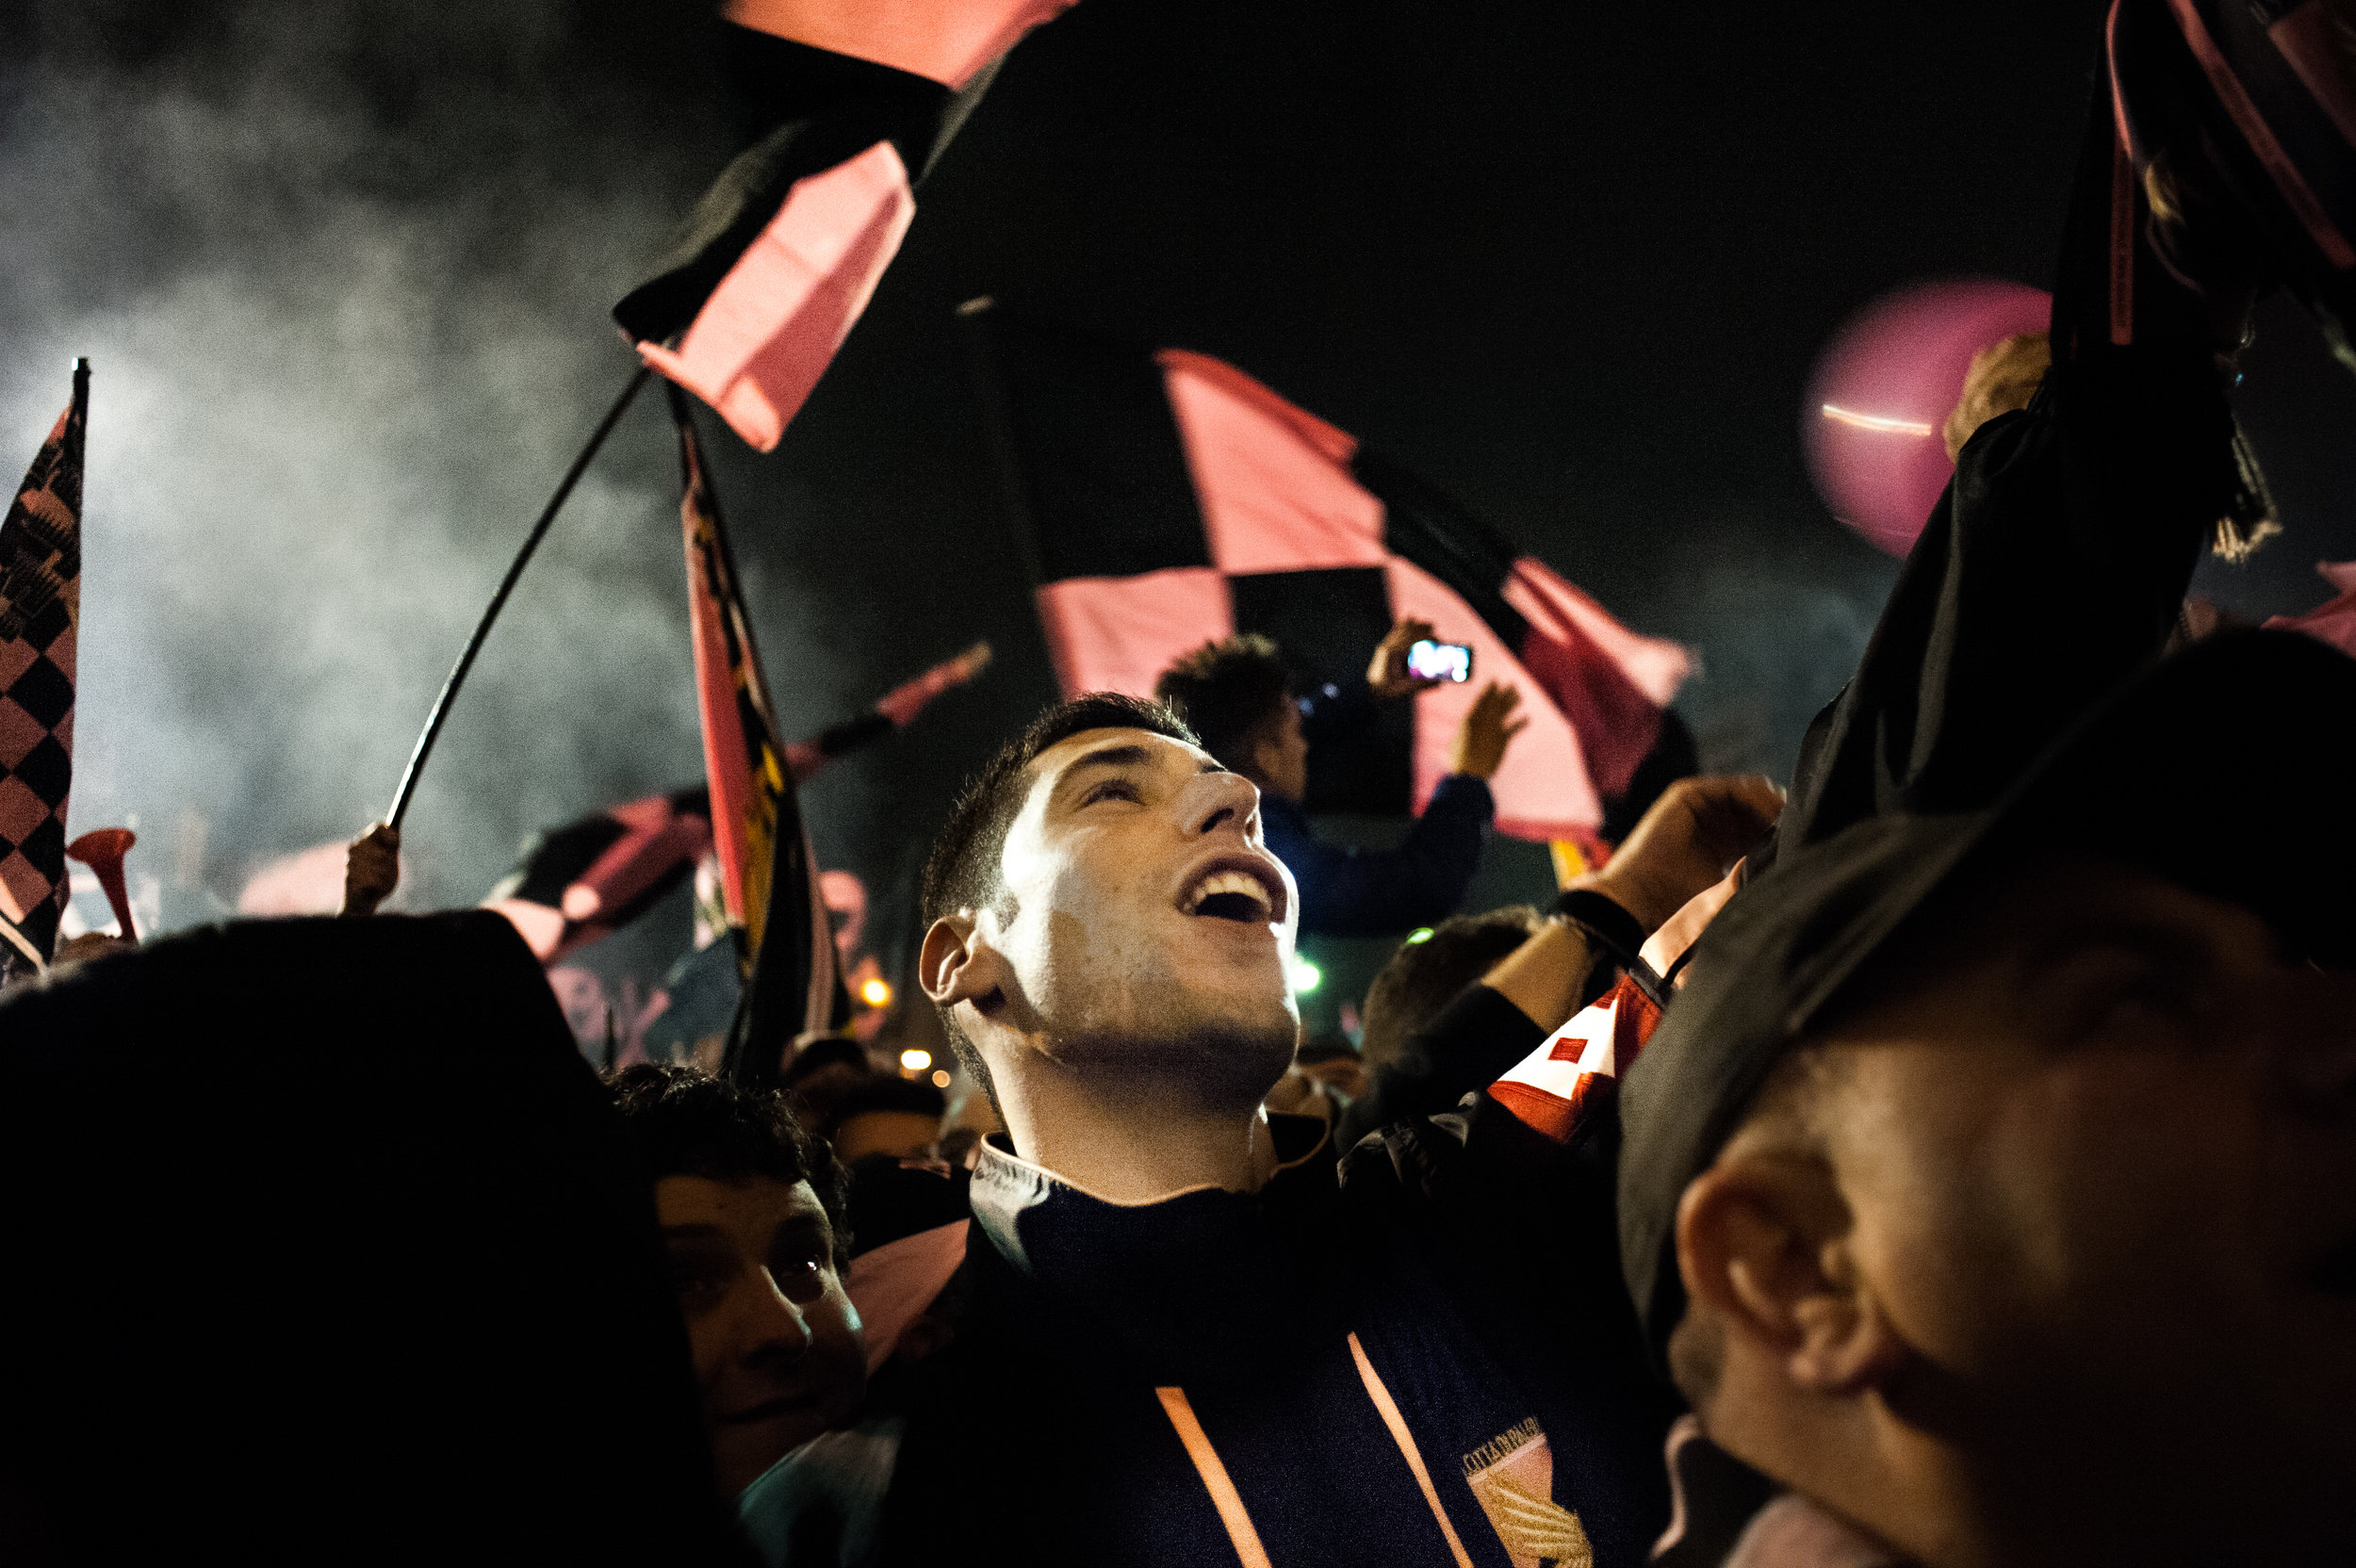 Fans celebrate outside the stadium Renzo Barbera as US Città di Palermo football team returns to Serie A after winning the game against Novara, in Palermo, Italy, May 3, 2014.